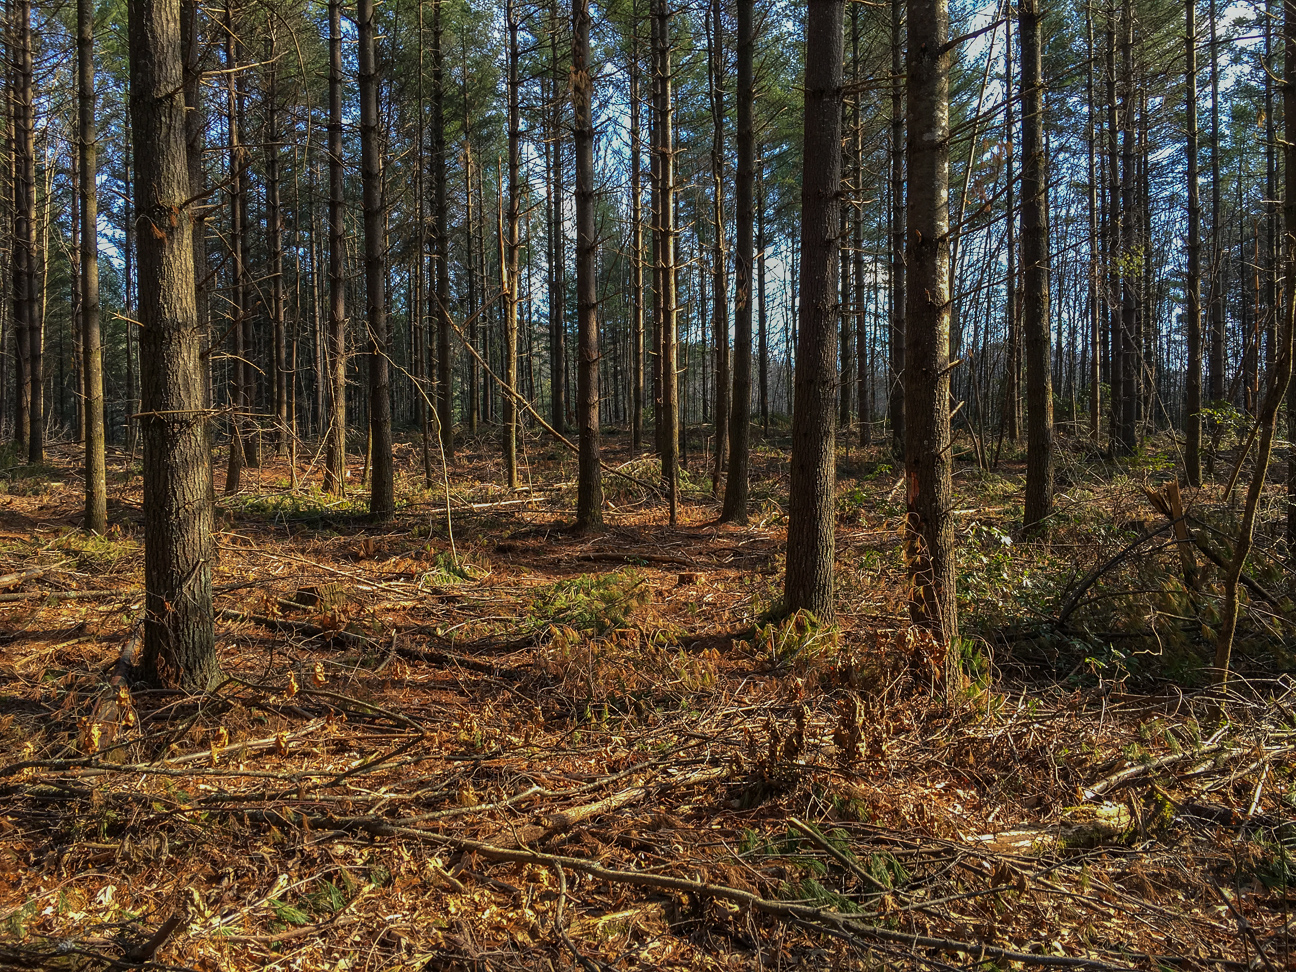 The logging is performed with a forwarder, a piece of equipment that minimizes soil disturbance and need for new roads.